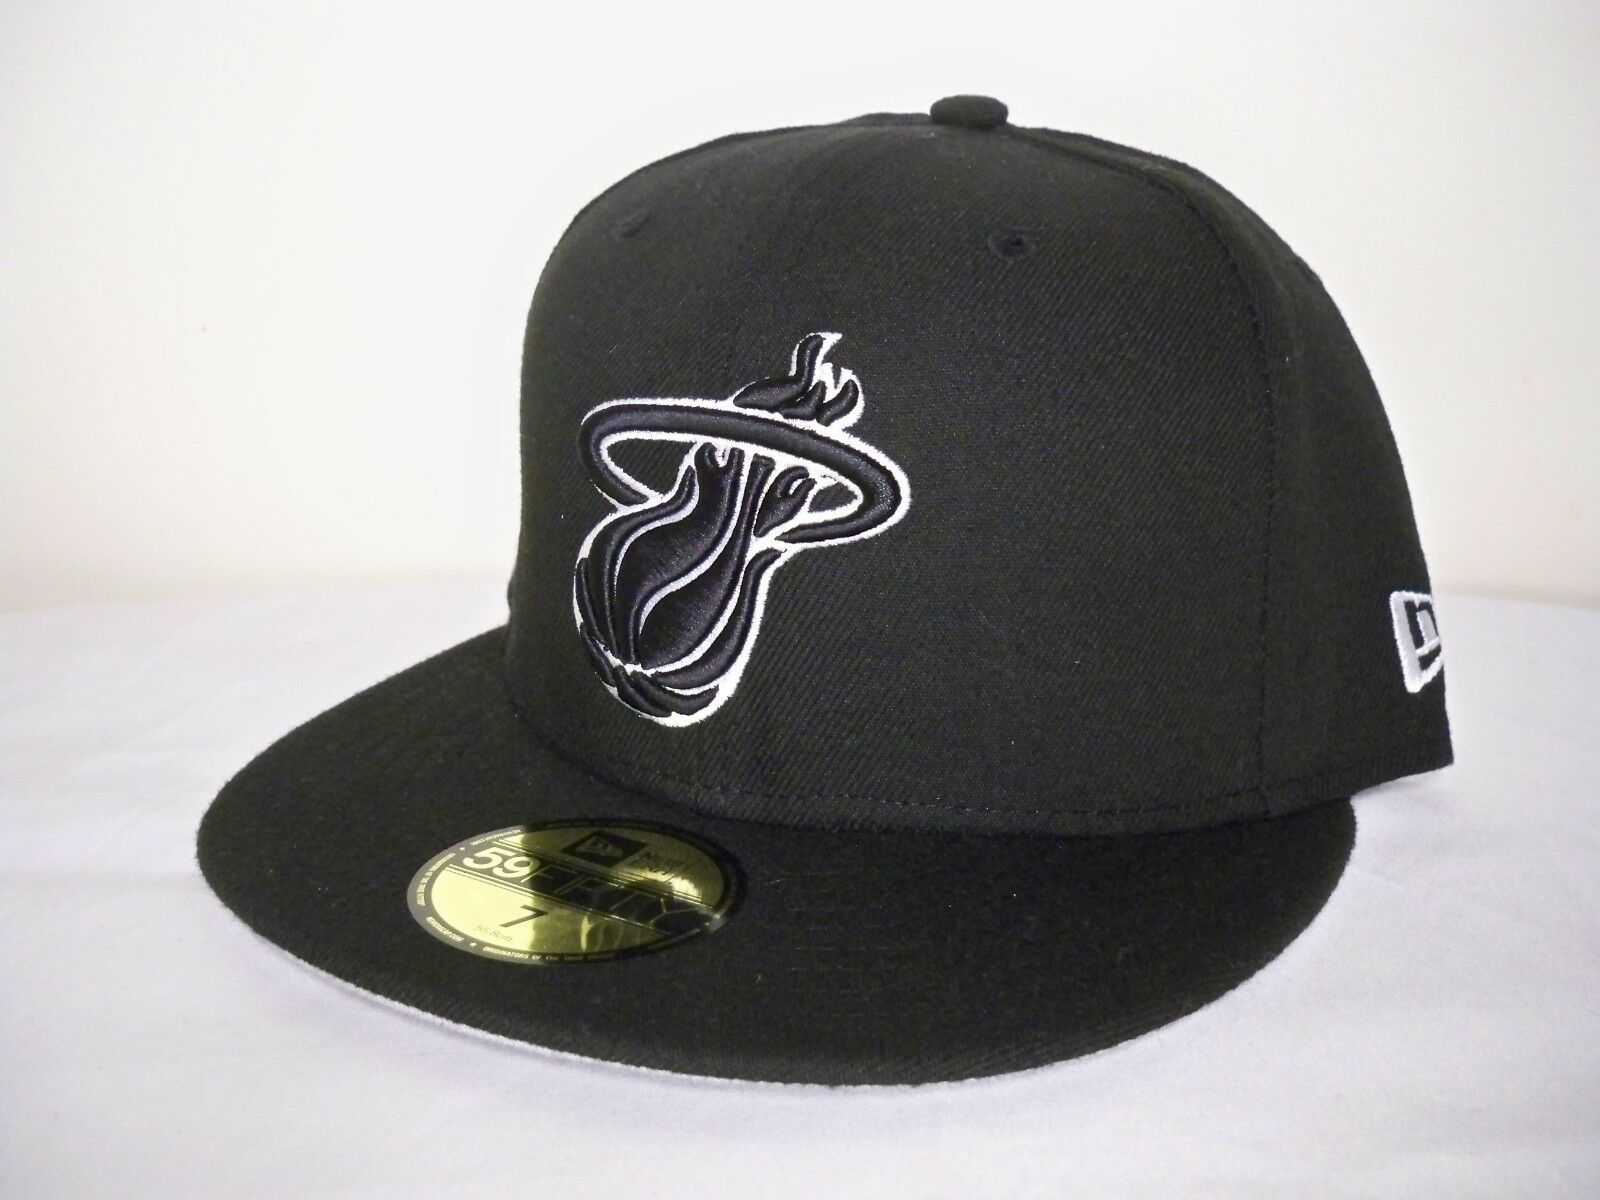 New Era 59FIFTY Miami Heat NBA Fitted Authentic Fitted NBA Black/White Cap 3a5363